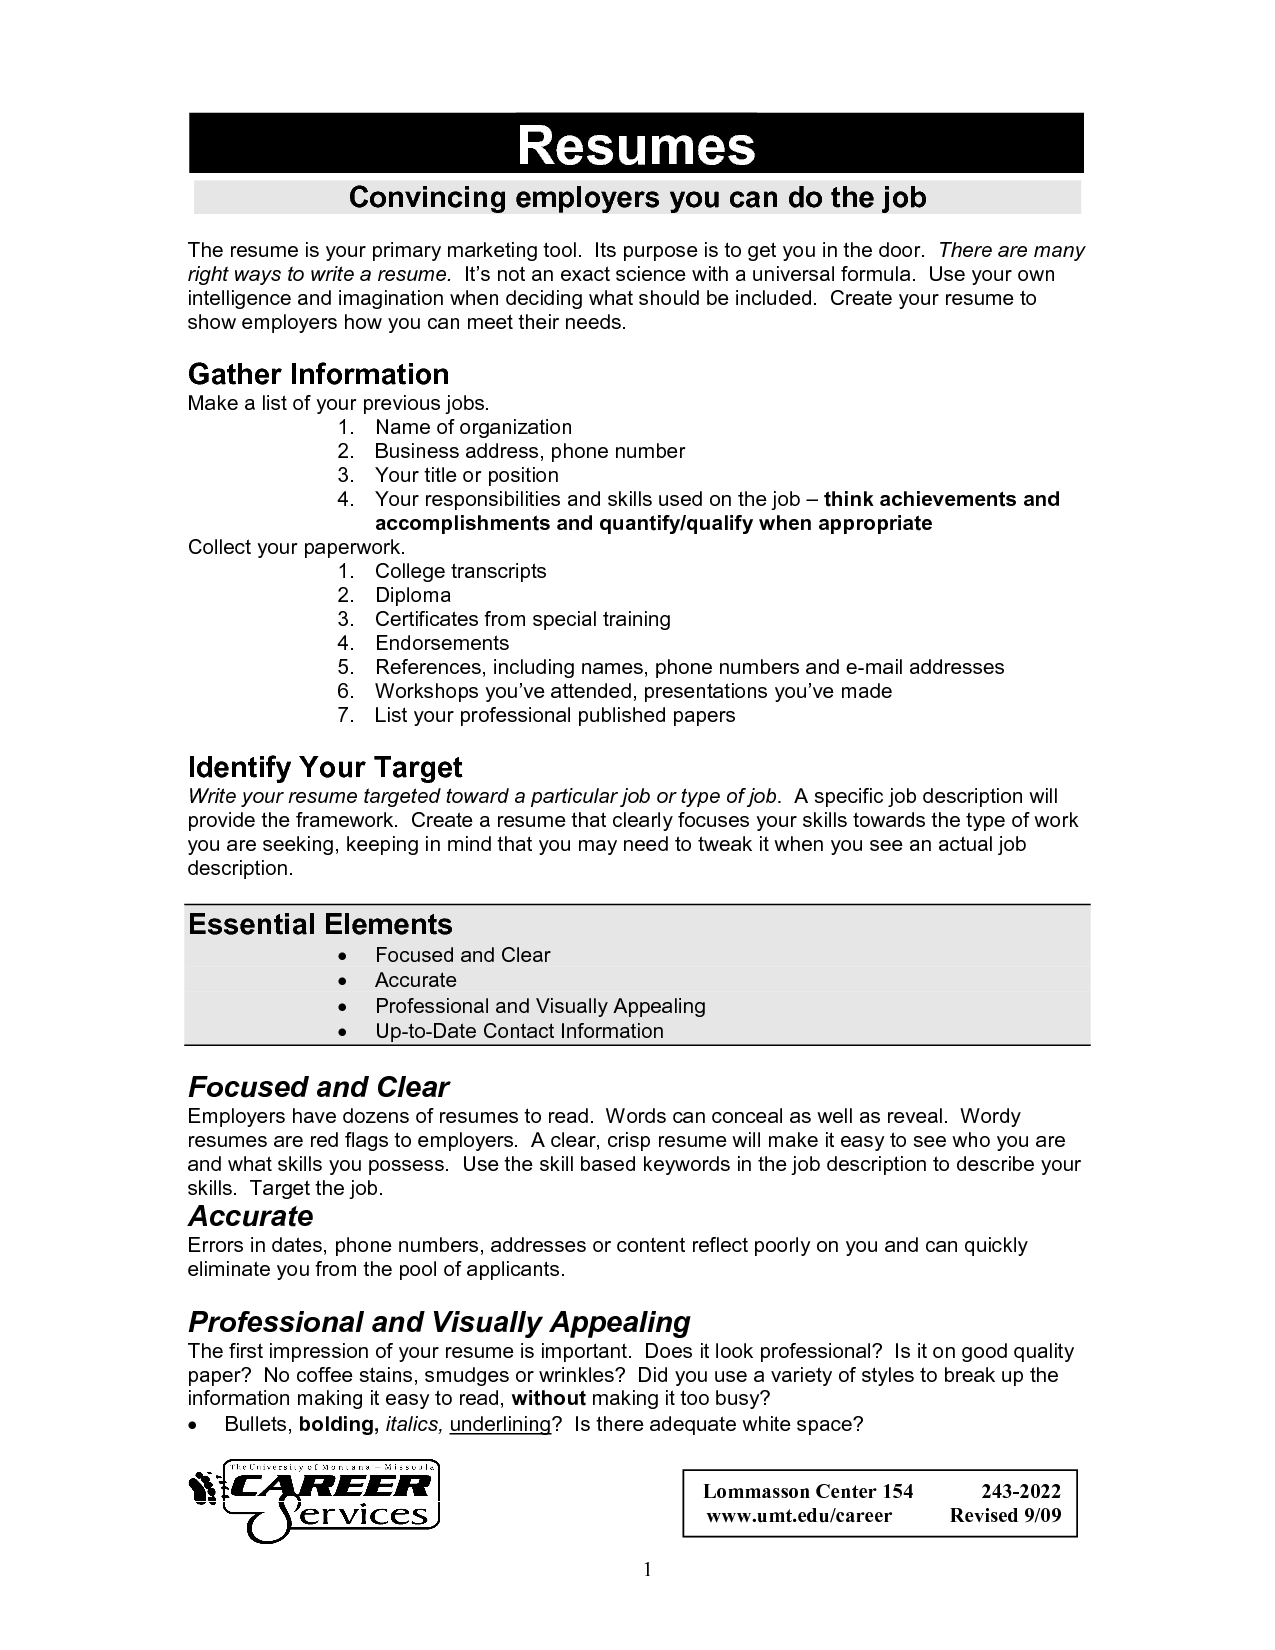 Good Job for KFC Resume Example Examples Of First Job Resumes kfc team member duties and